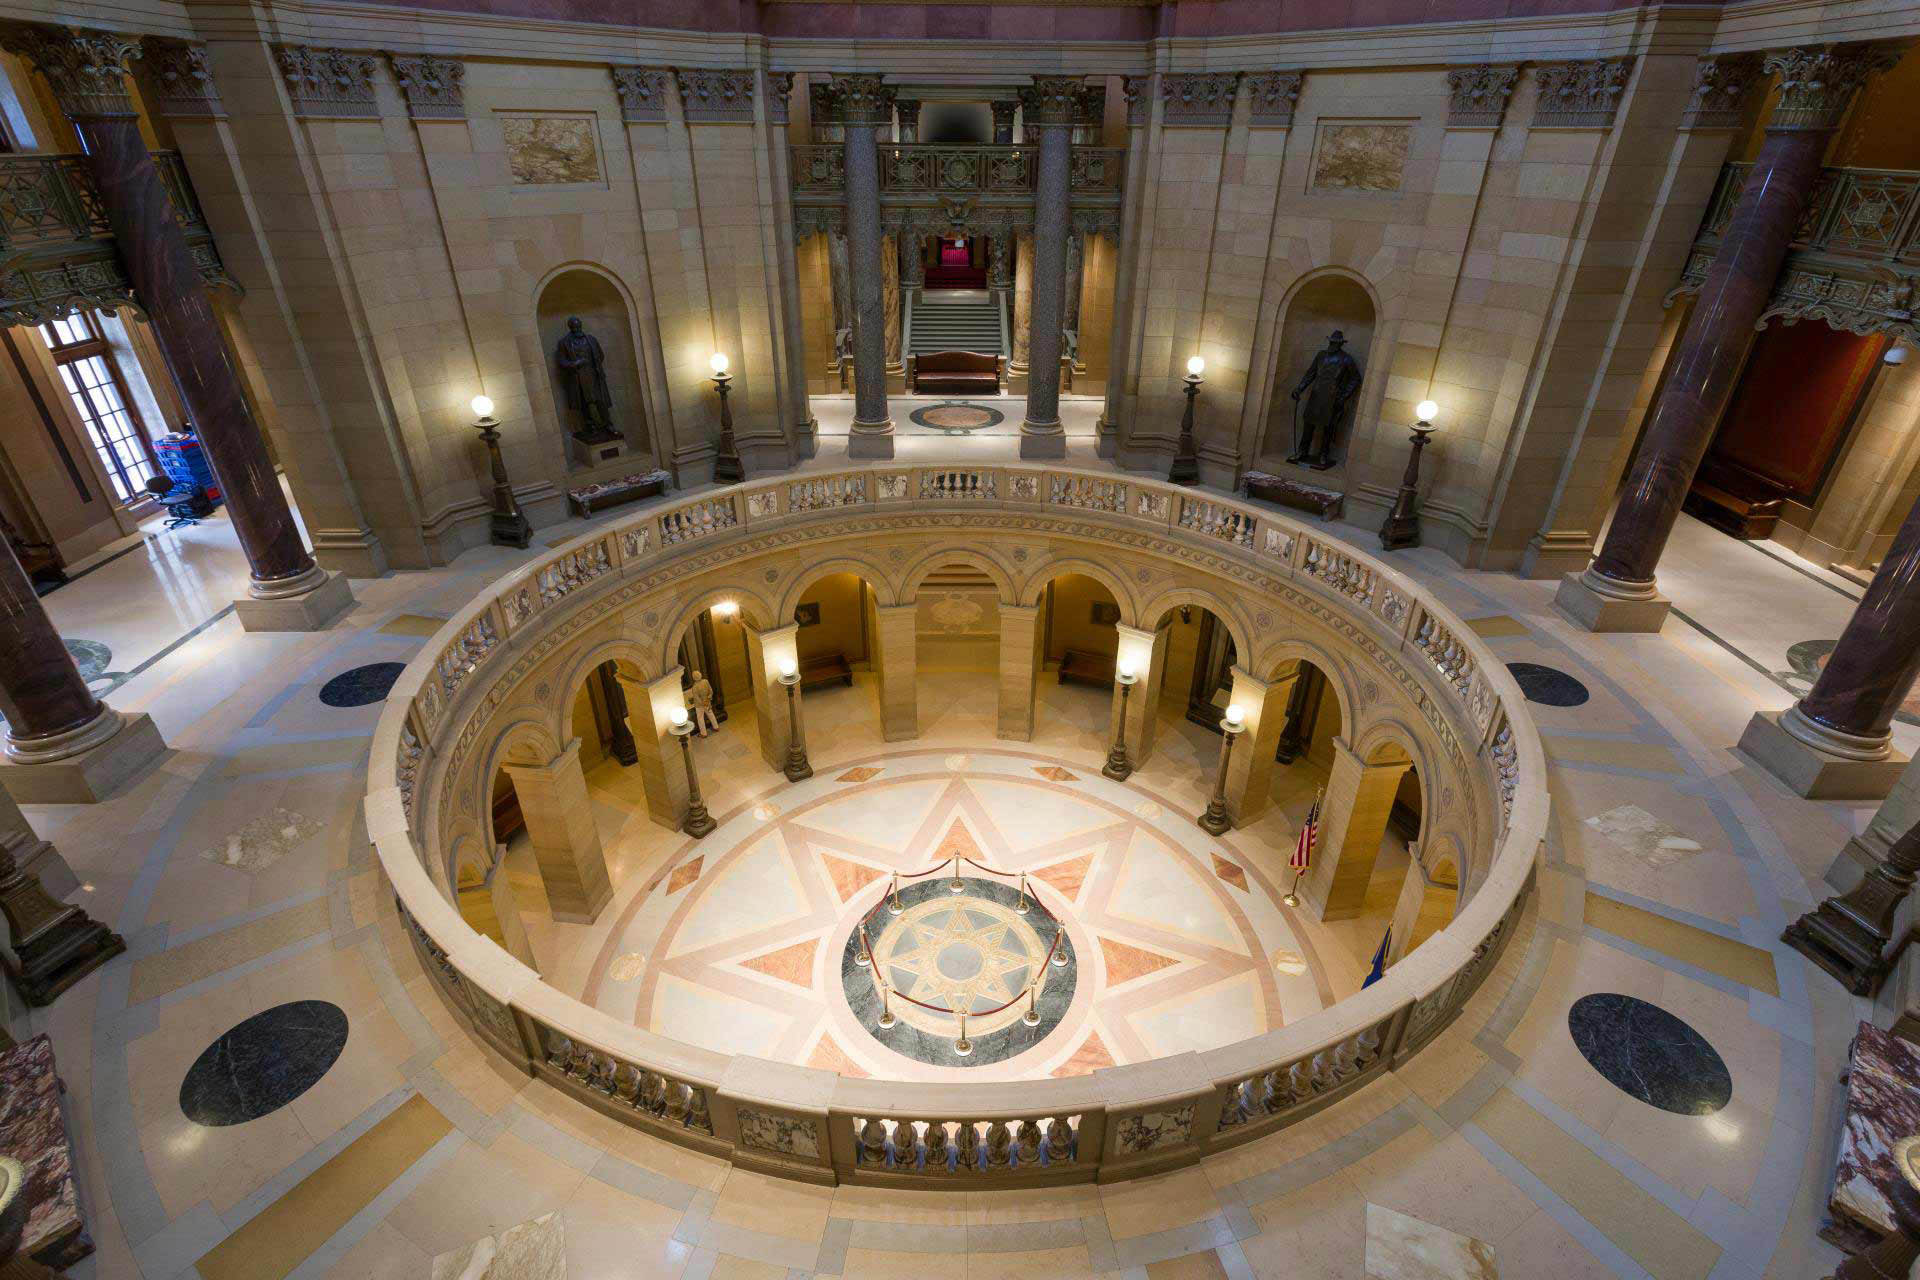 Looking down at the rotunda from the second floor